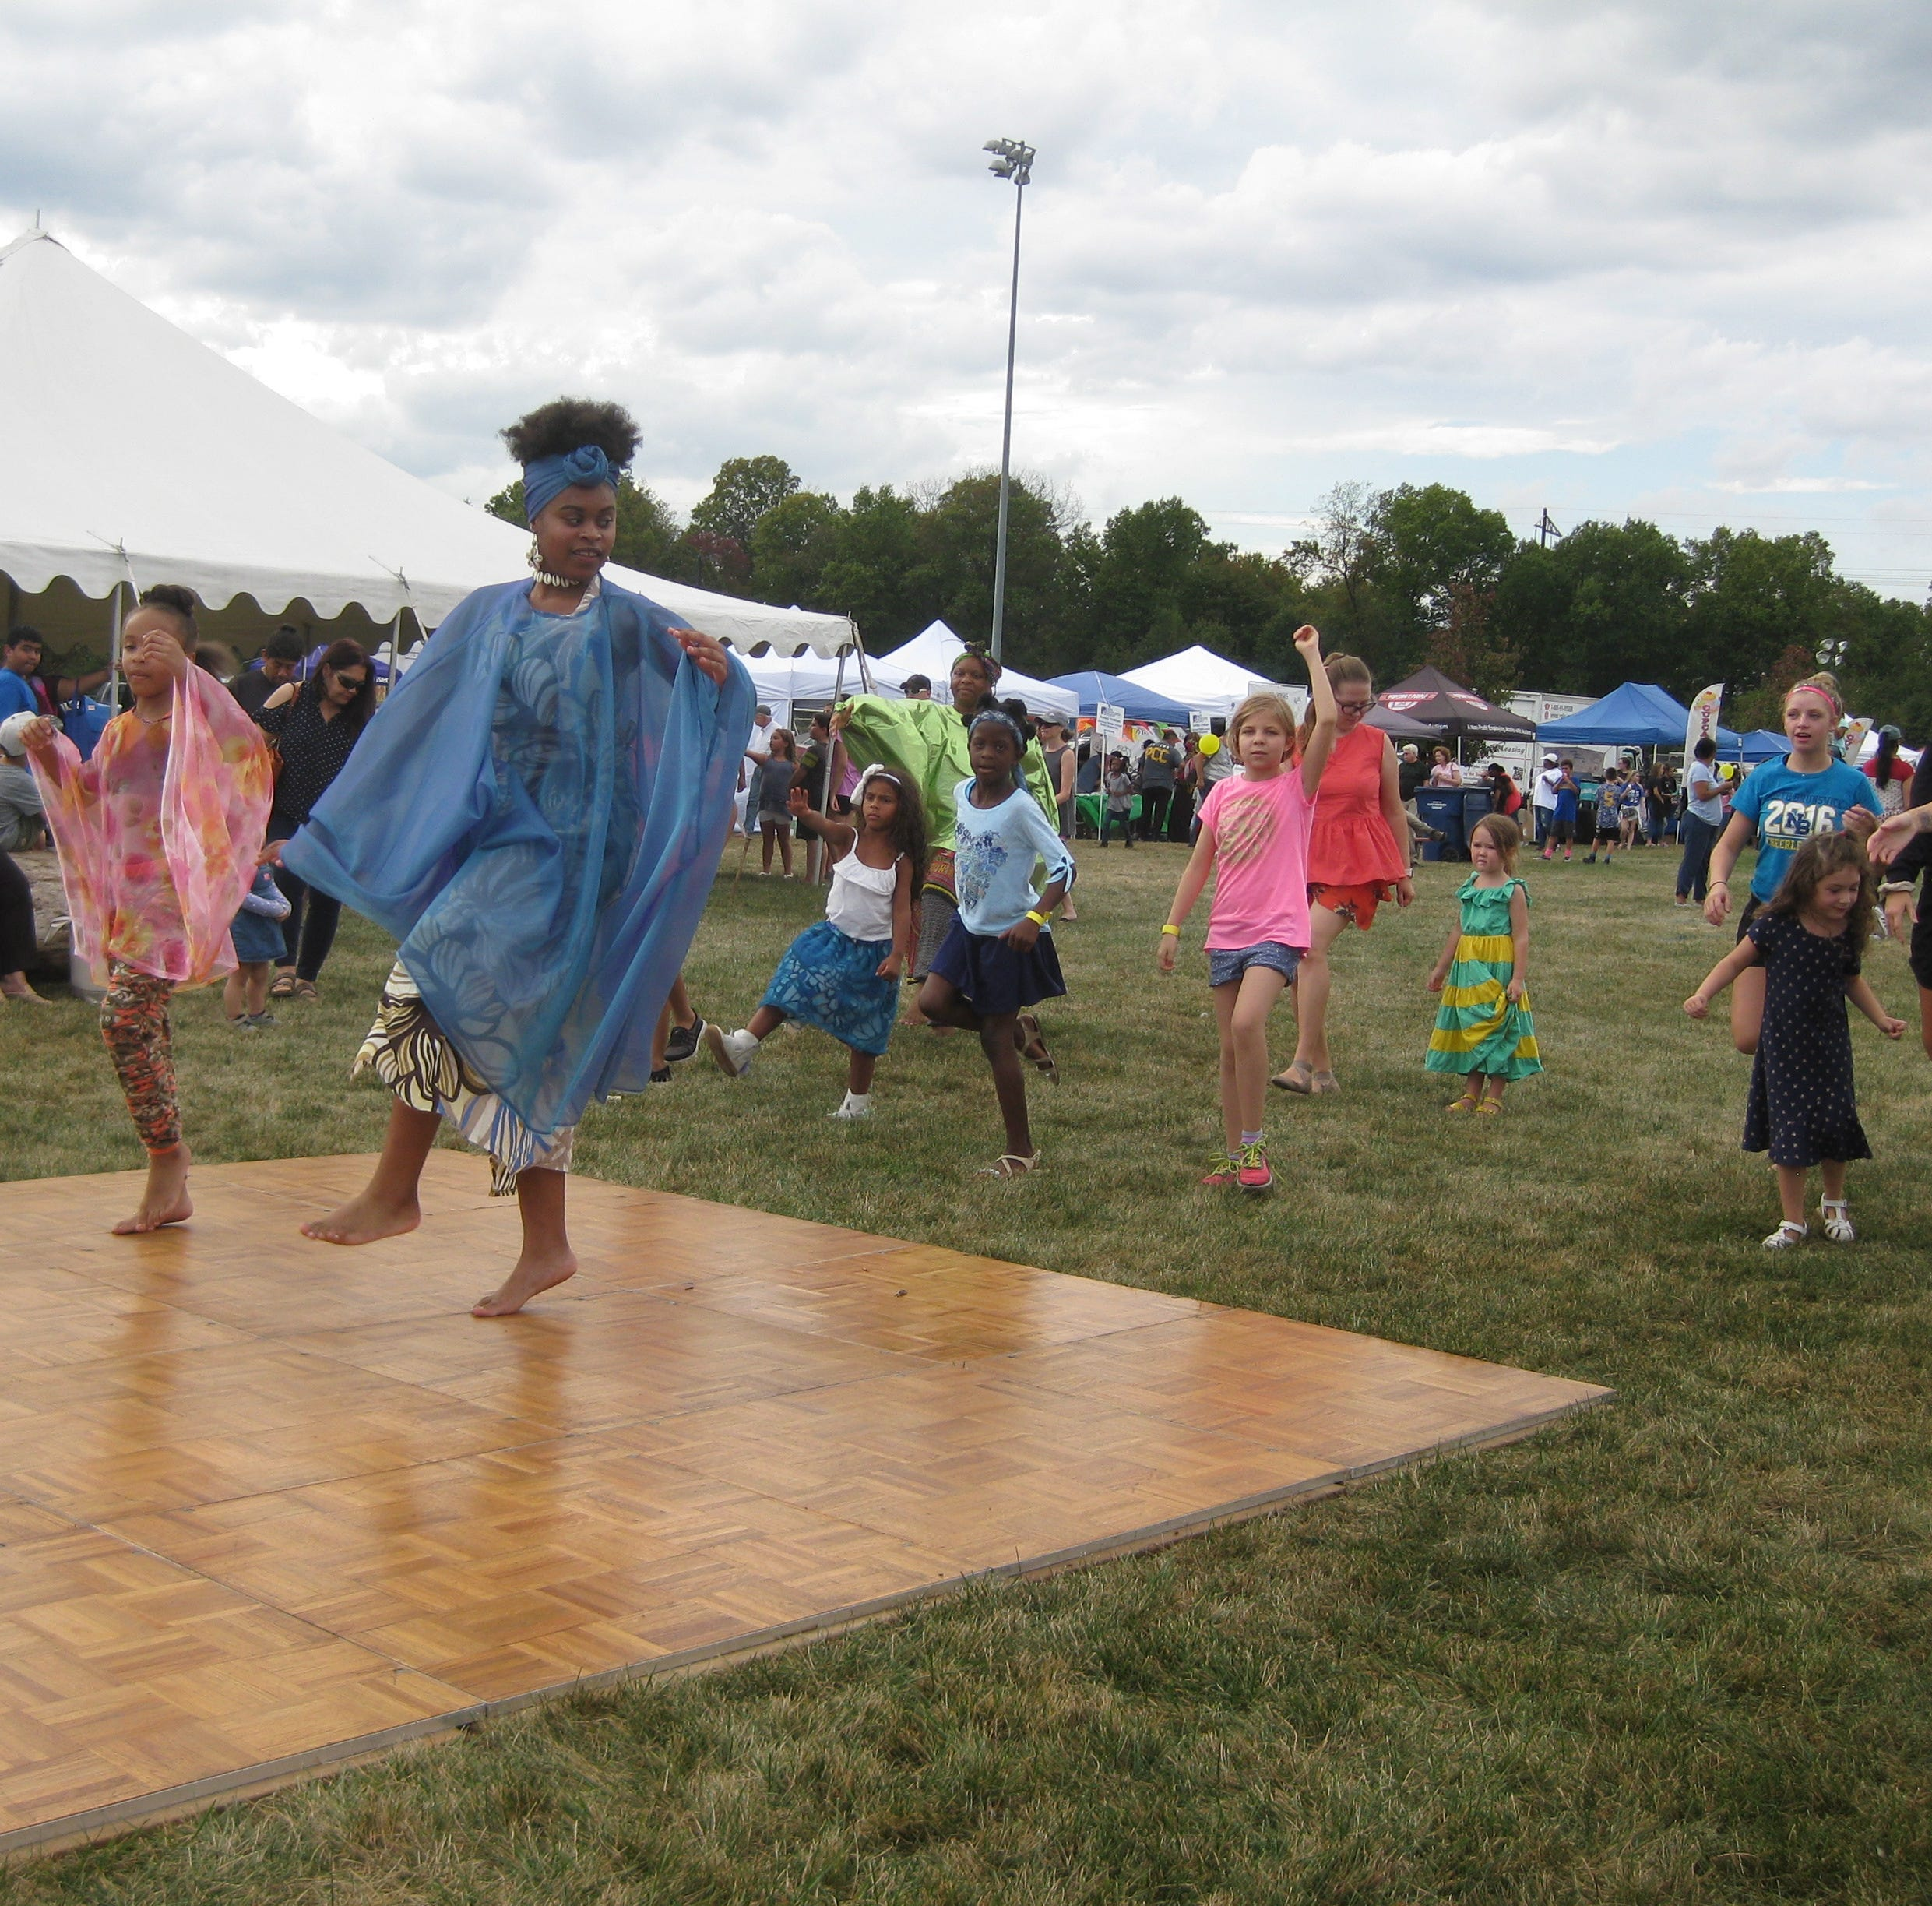 North Brunswick, East Brunswick and Milltown plan community days this weekend